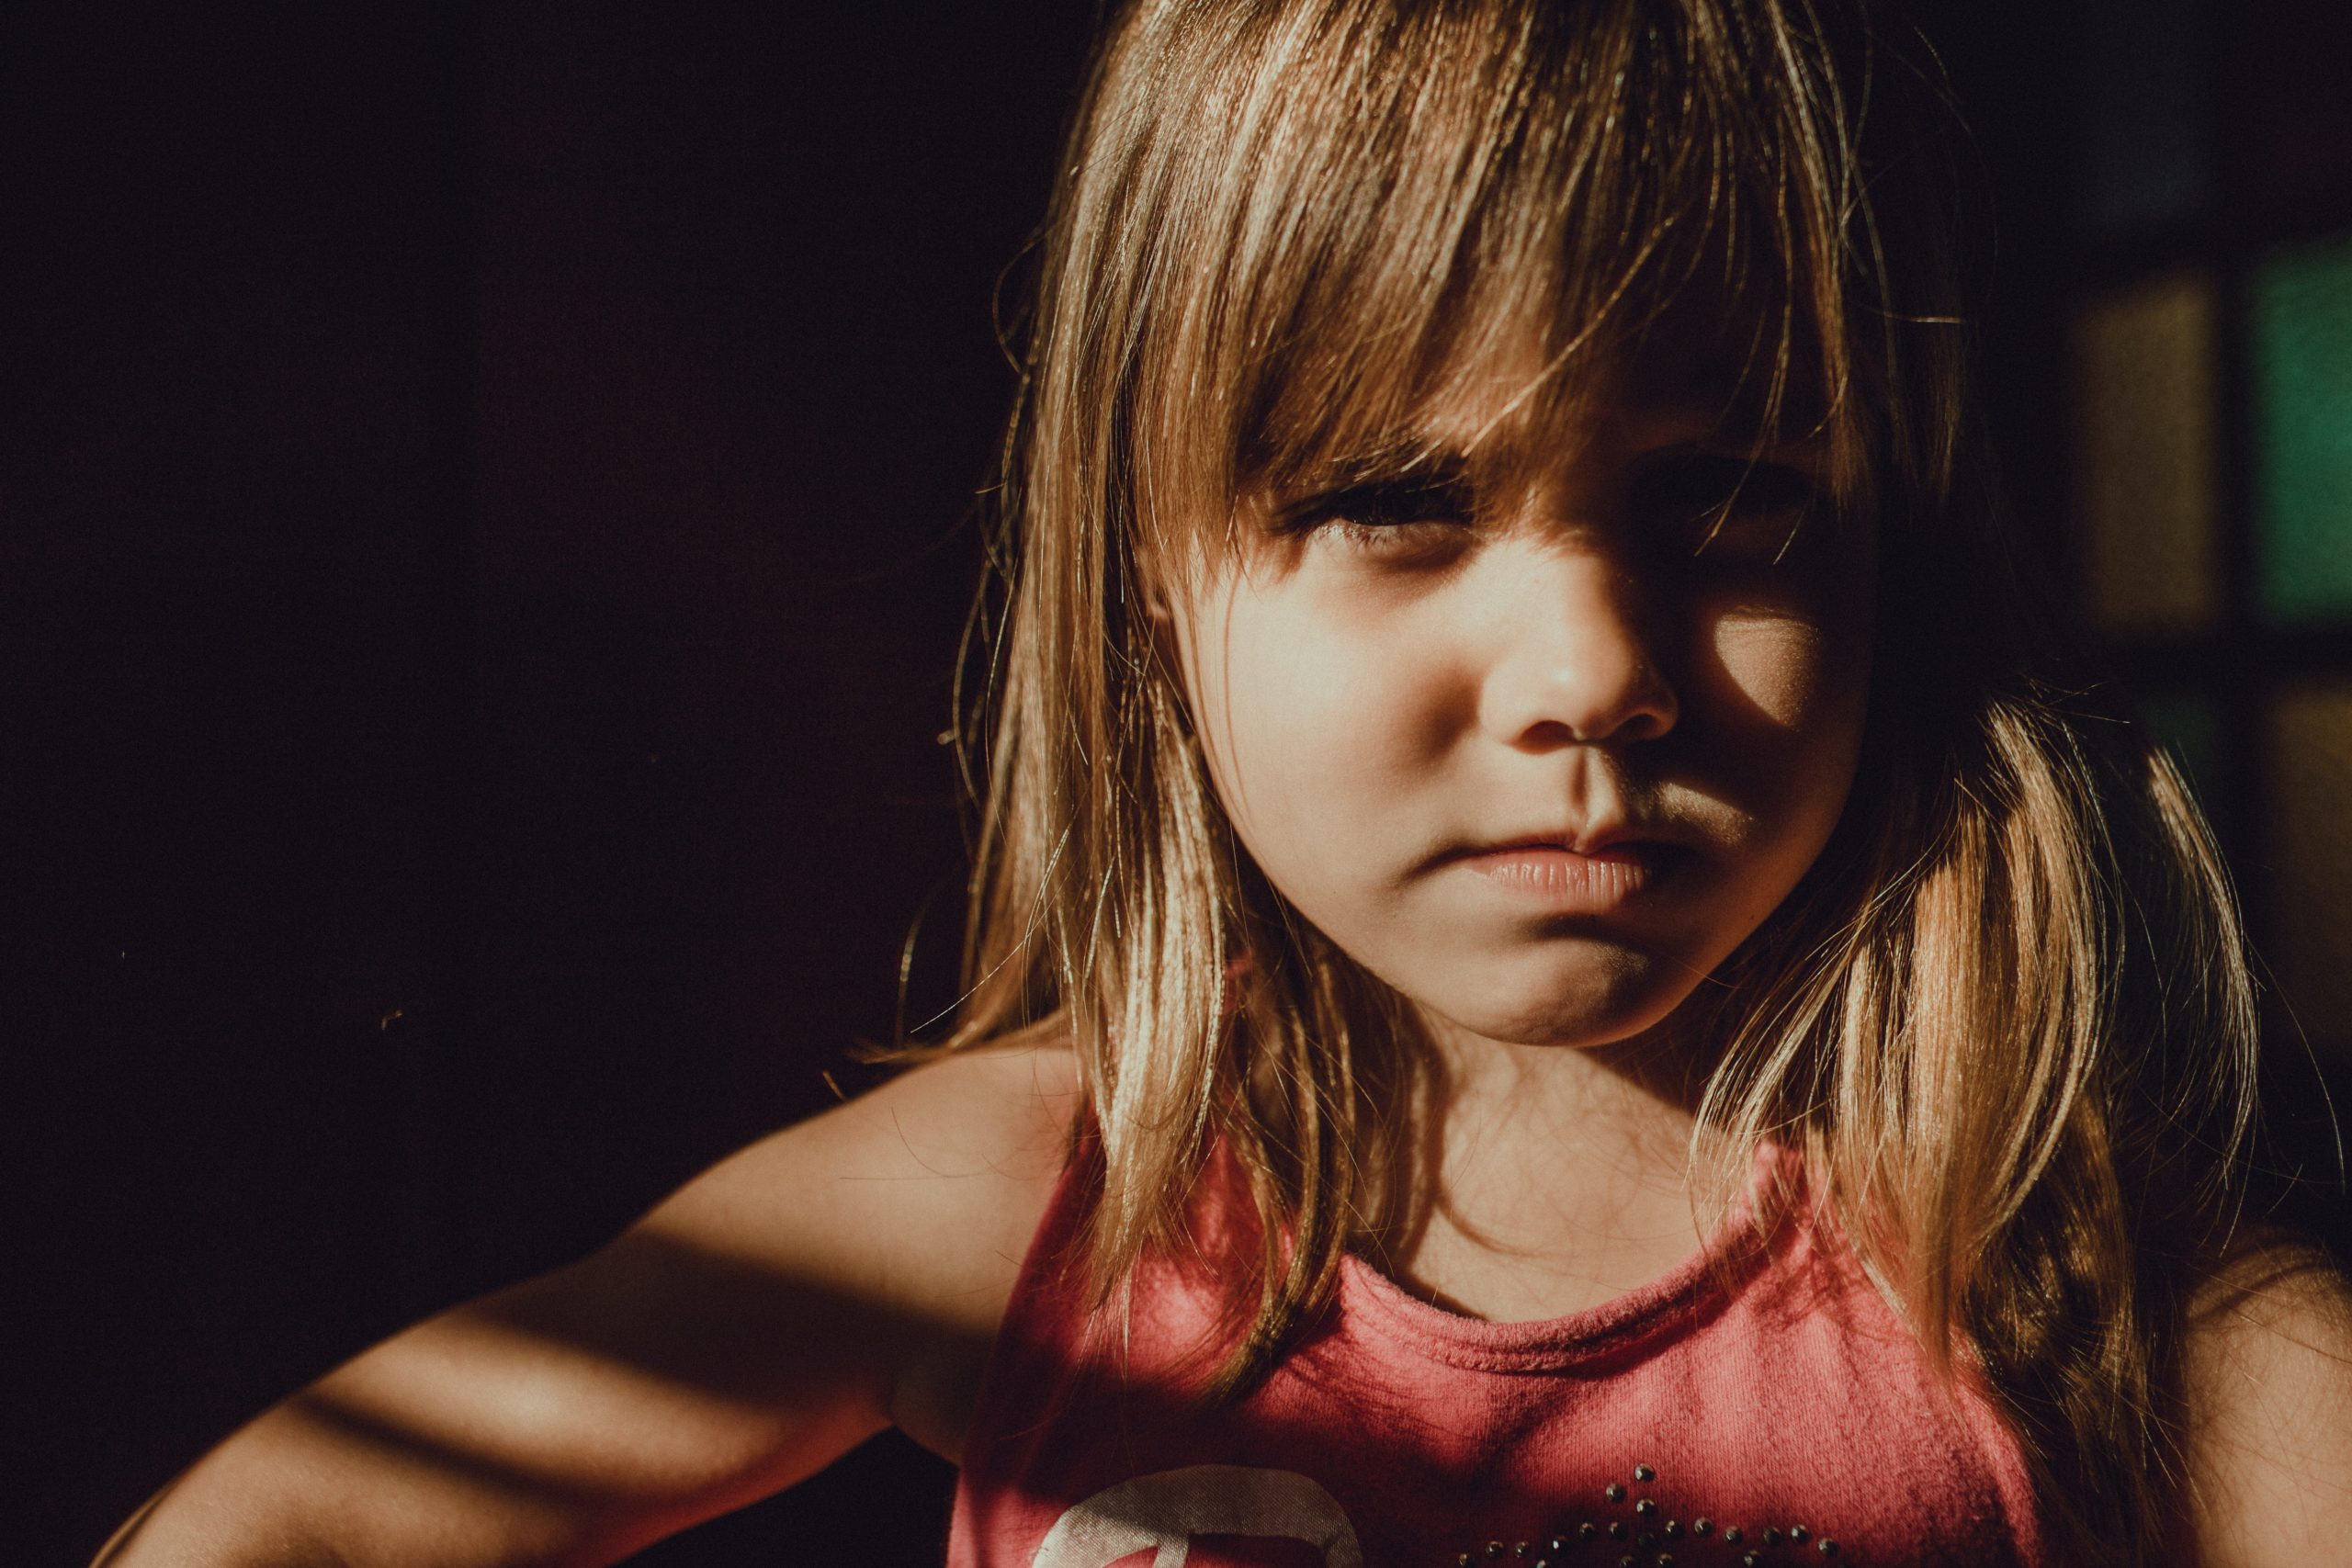 Pensive child looking into camera